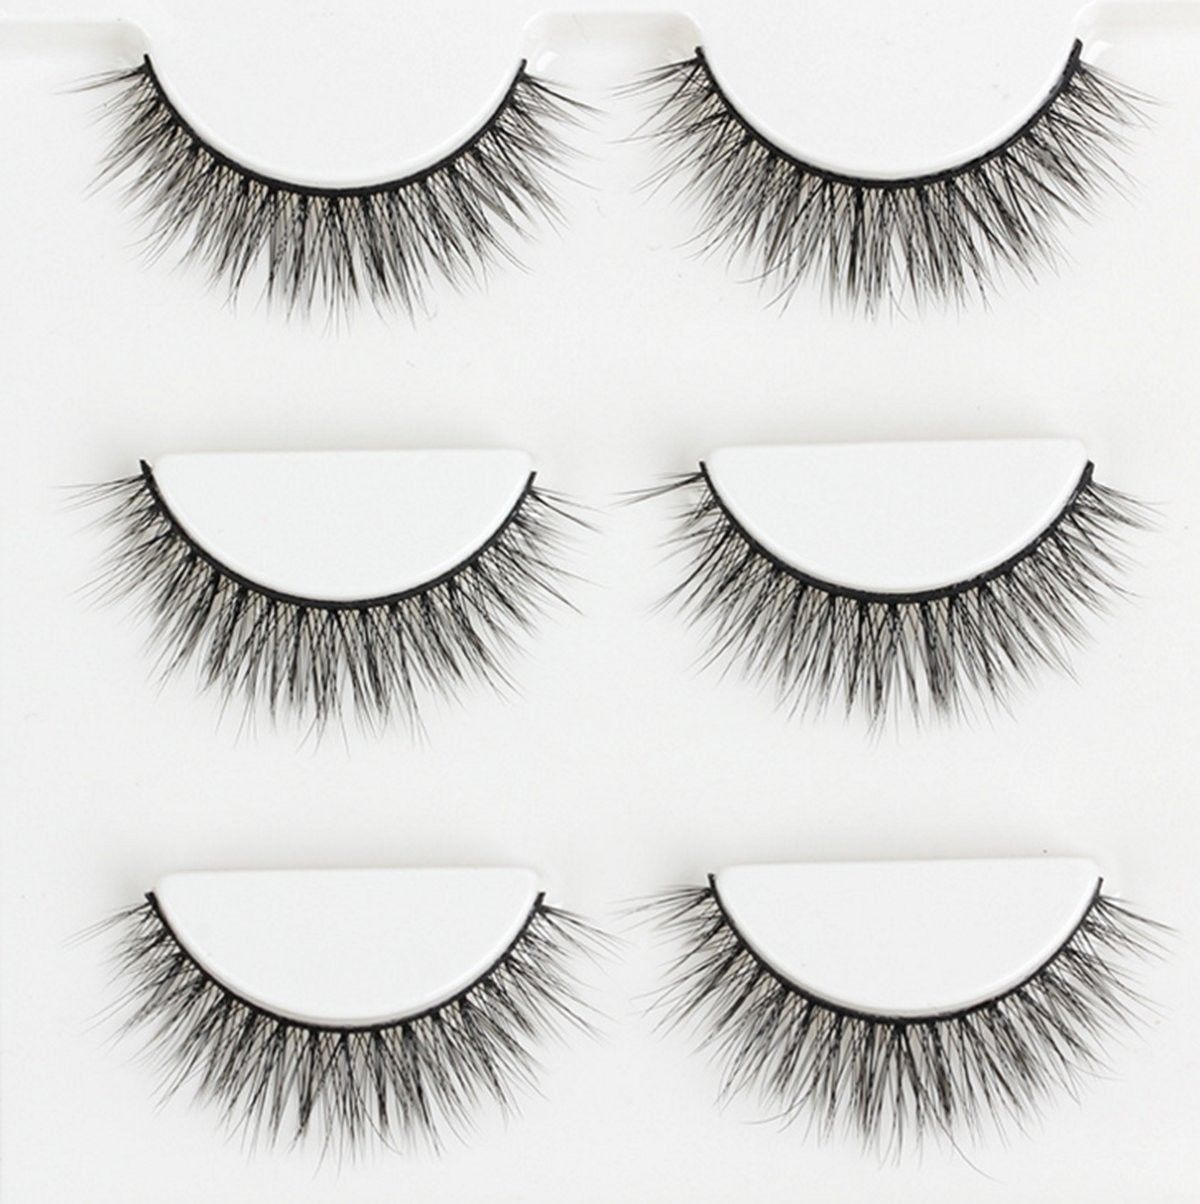 Aspiring 1 Pair Soft Cross New Luxurious 100% Real Mink Natural Thick Fake Eye Lashes False Eyelashes Makeup Tools Beauty & Health